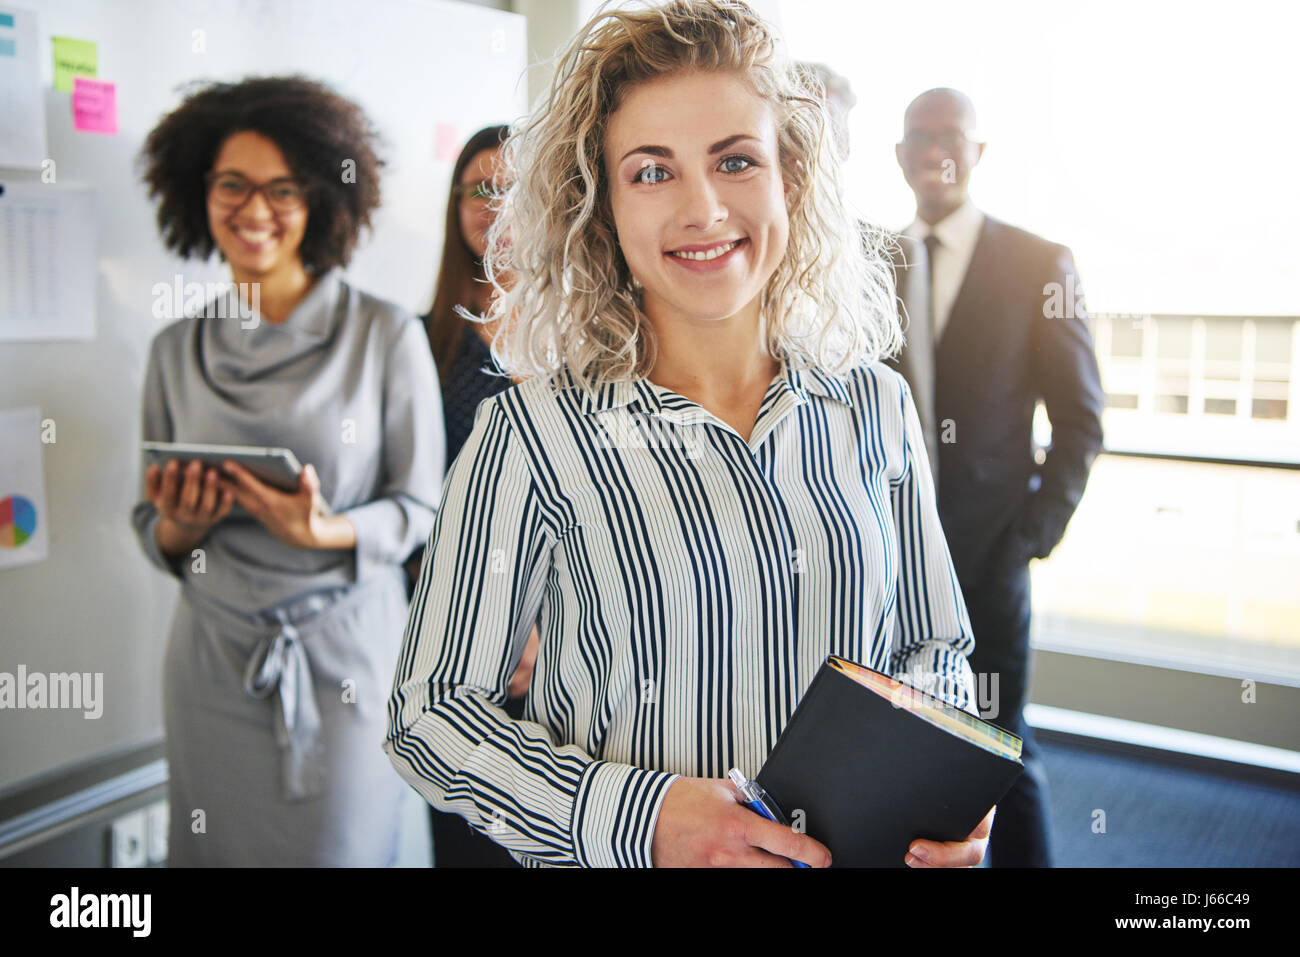 Business woman standing in front of colleagues, mixed races people looking positive - Stock Image